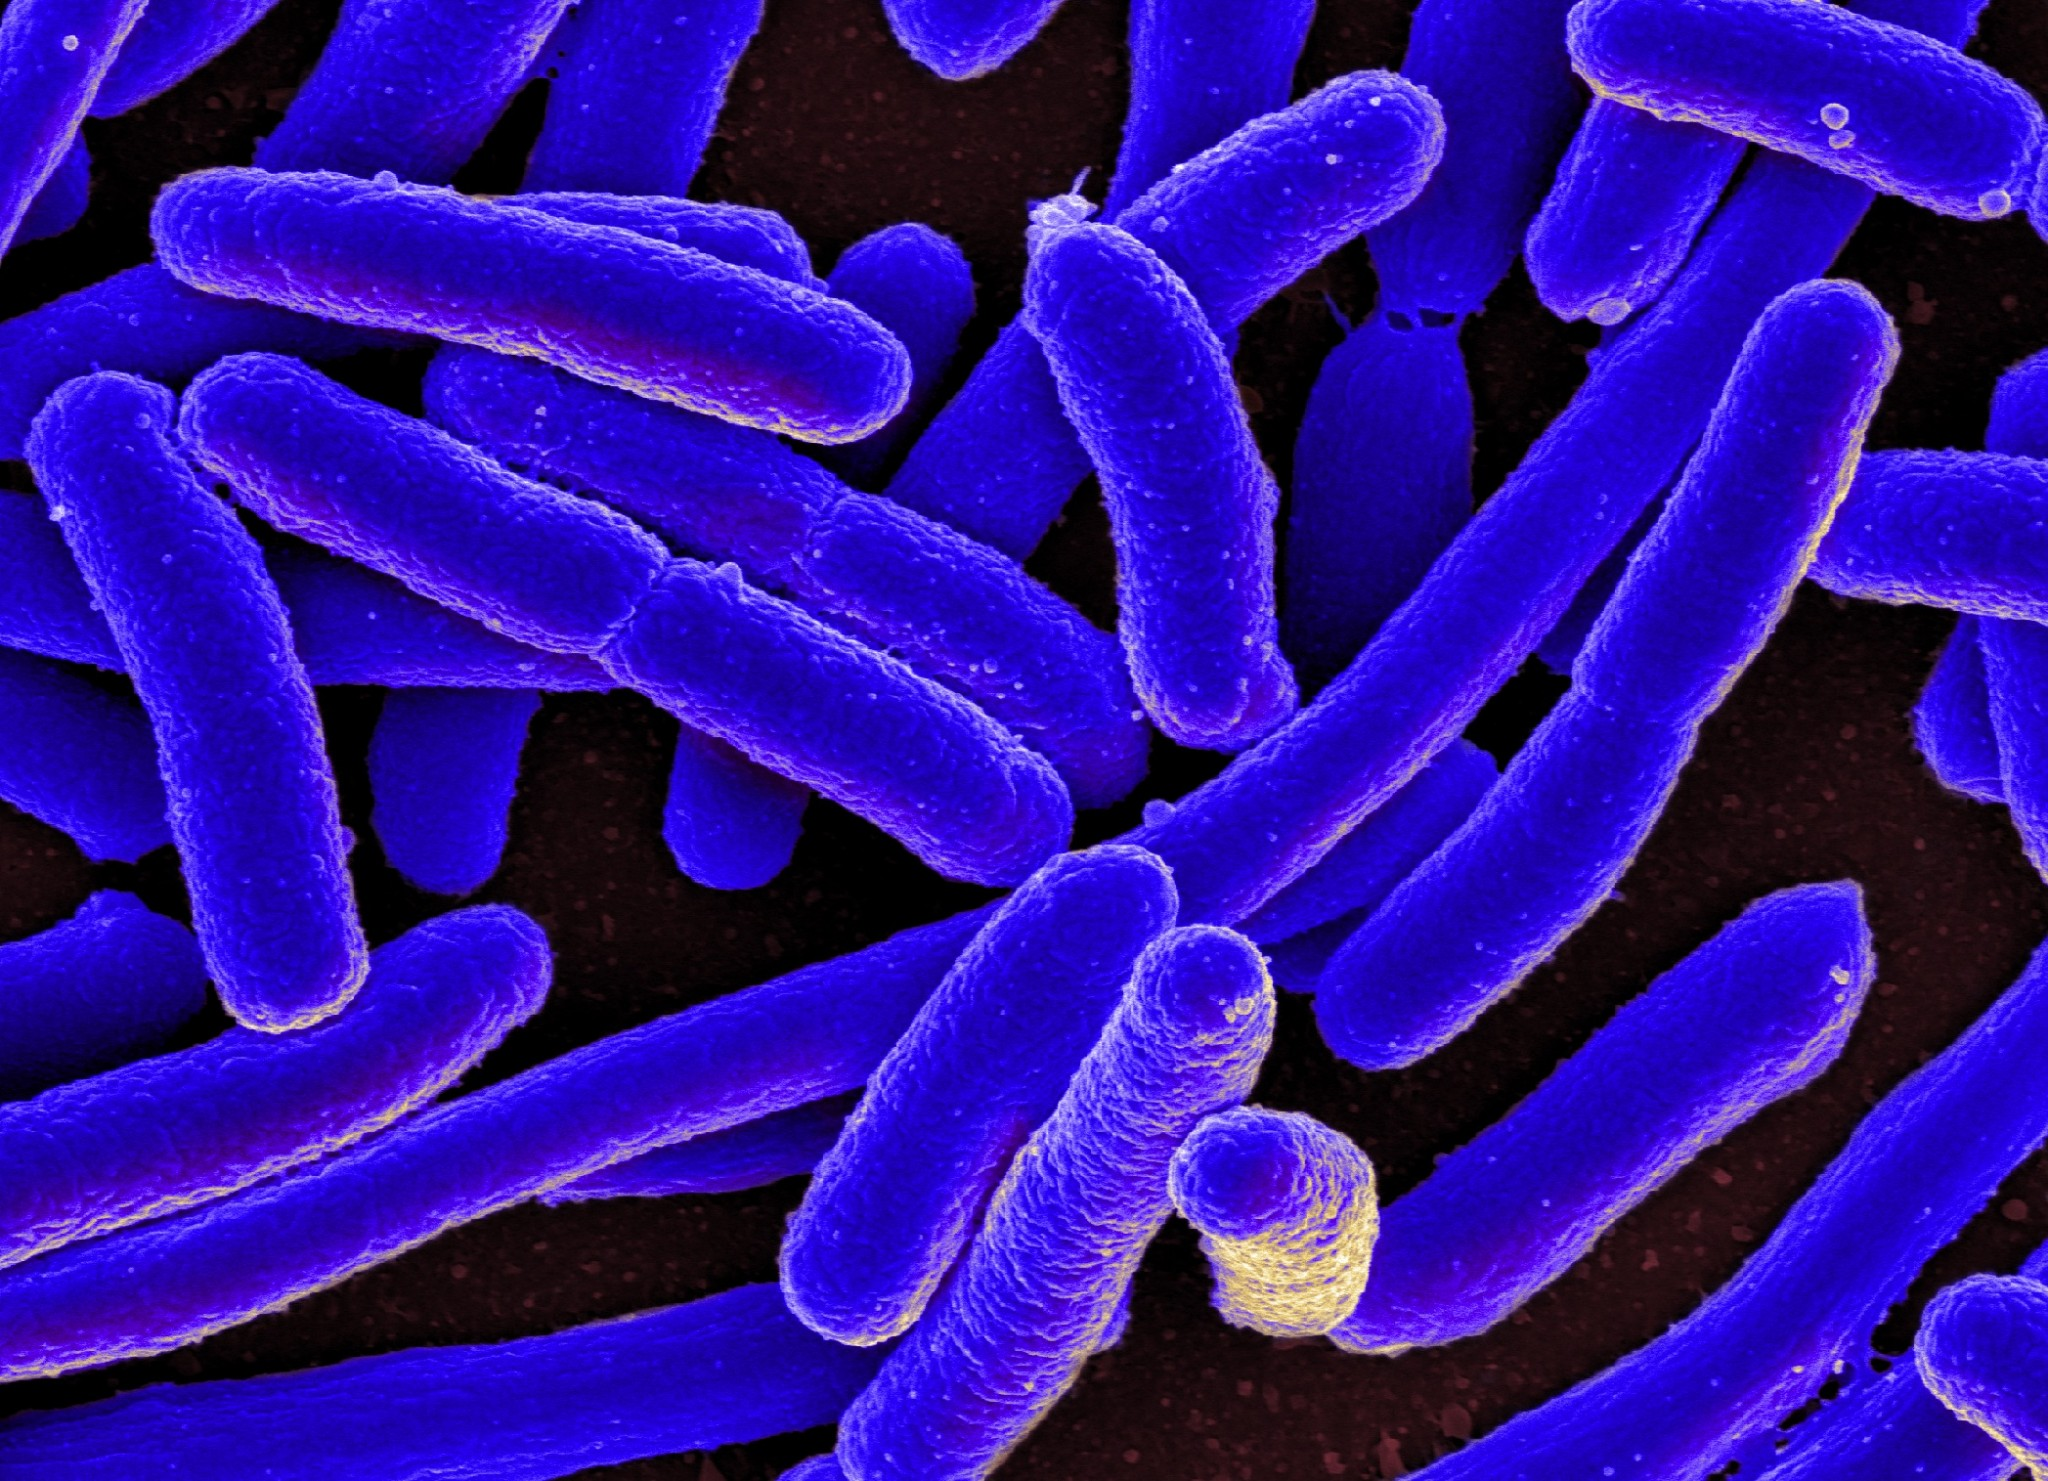 E. Coli. Image: Wikimedia Commons.